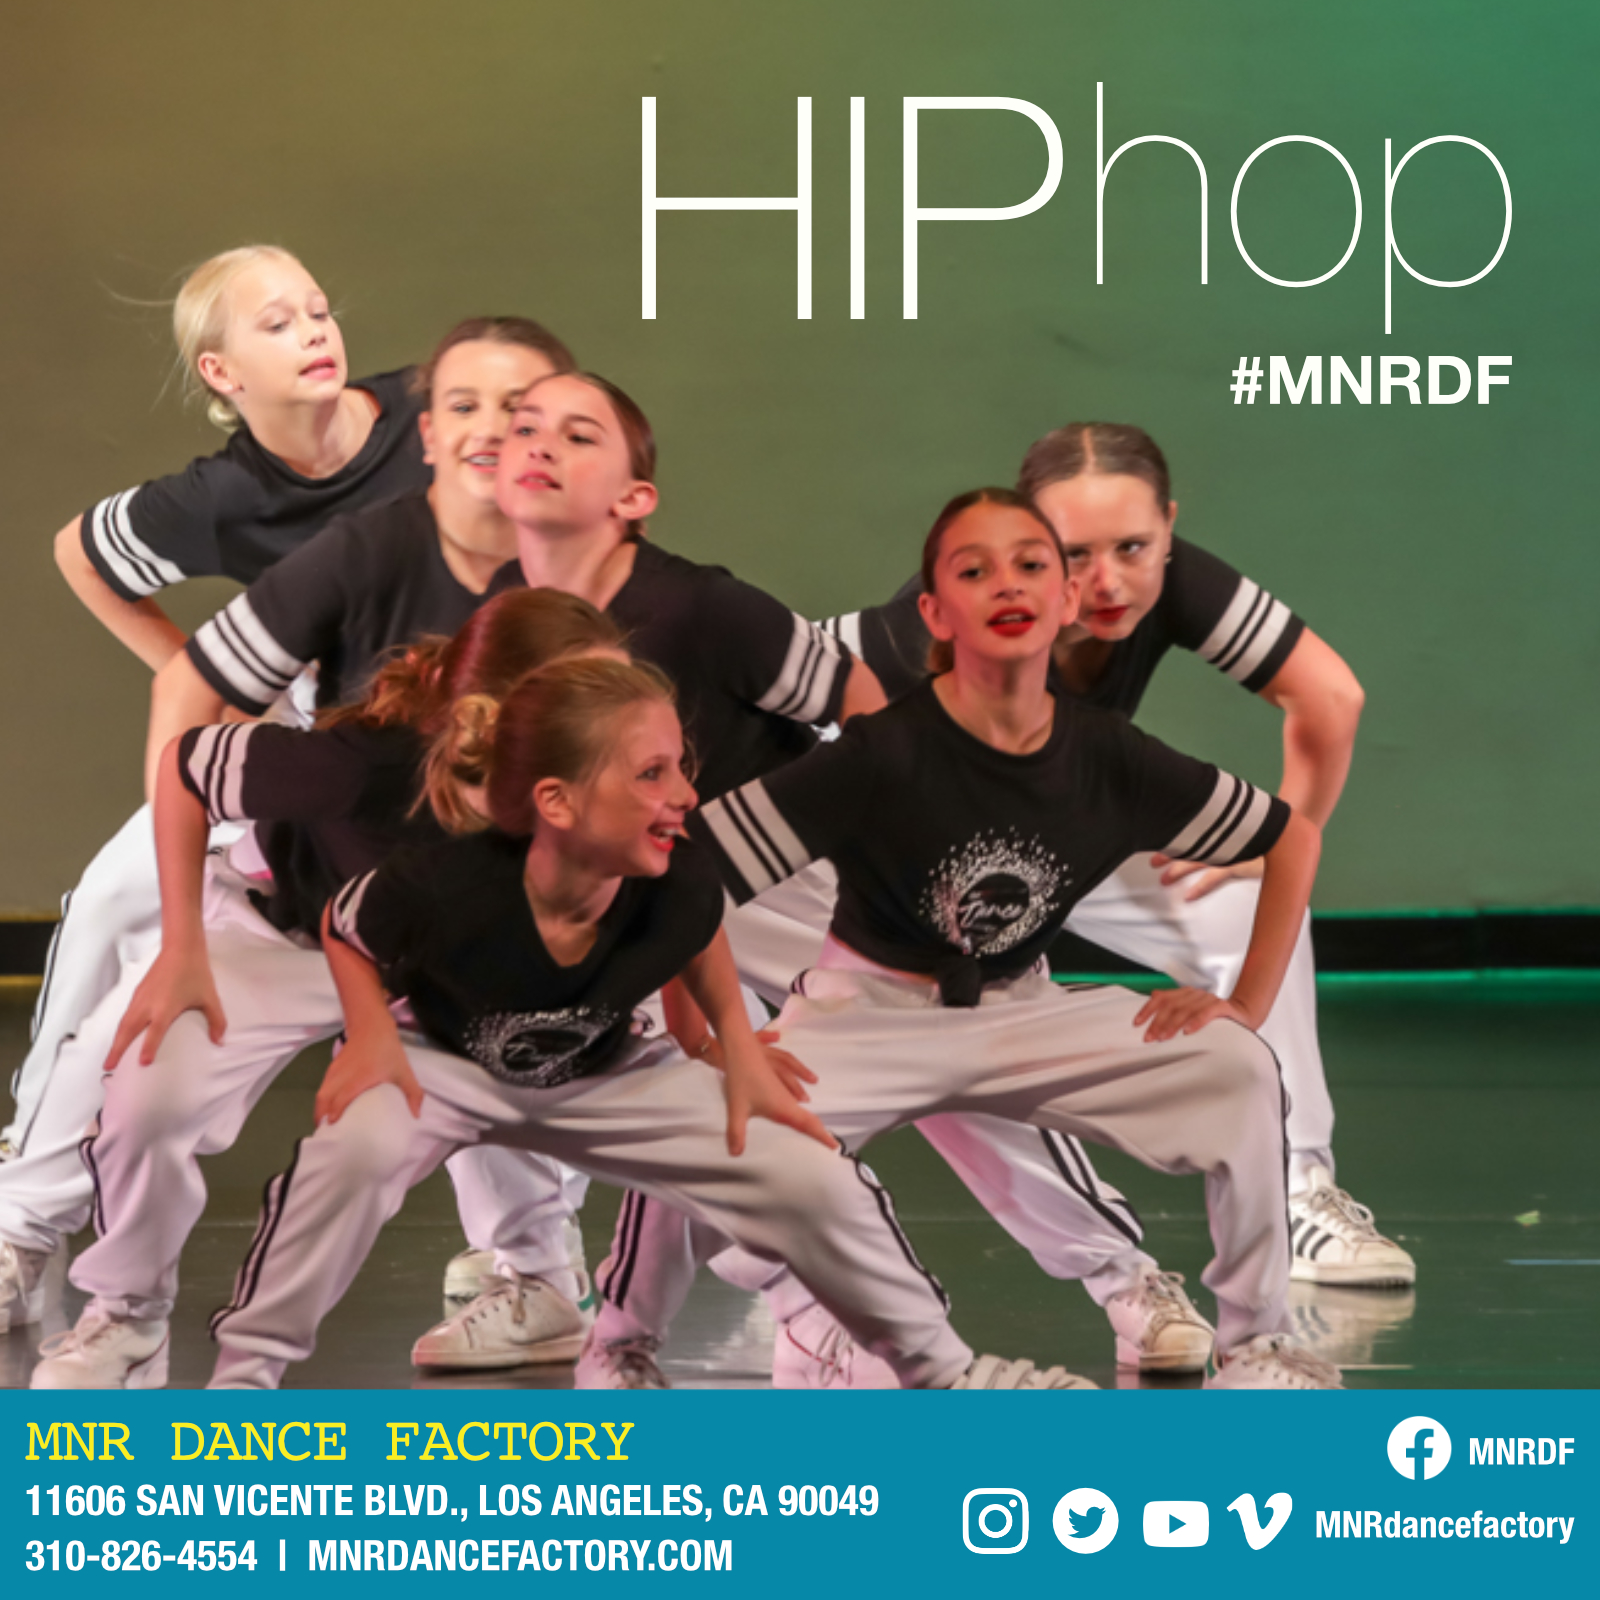 Hip Hop - Hip-hop dance refers to street dance styles primarily performed to hip-hop music or that have evolved as part of hip-hop culture. It includes a wide range of styles where each student develops a unique movement all their own. Dancers will learn how to isolate their bodies, build their rhythm, and have a great time.This program is especially great for those boys who are showing a talent and passion for dance but feel uncomfortable in a traditional ballet class with mostly girls.